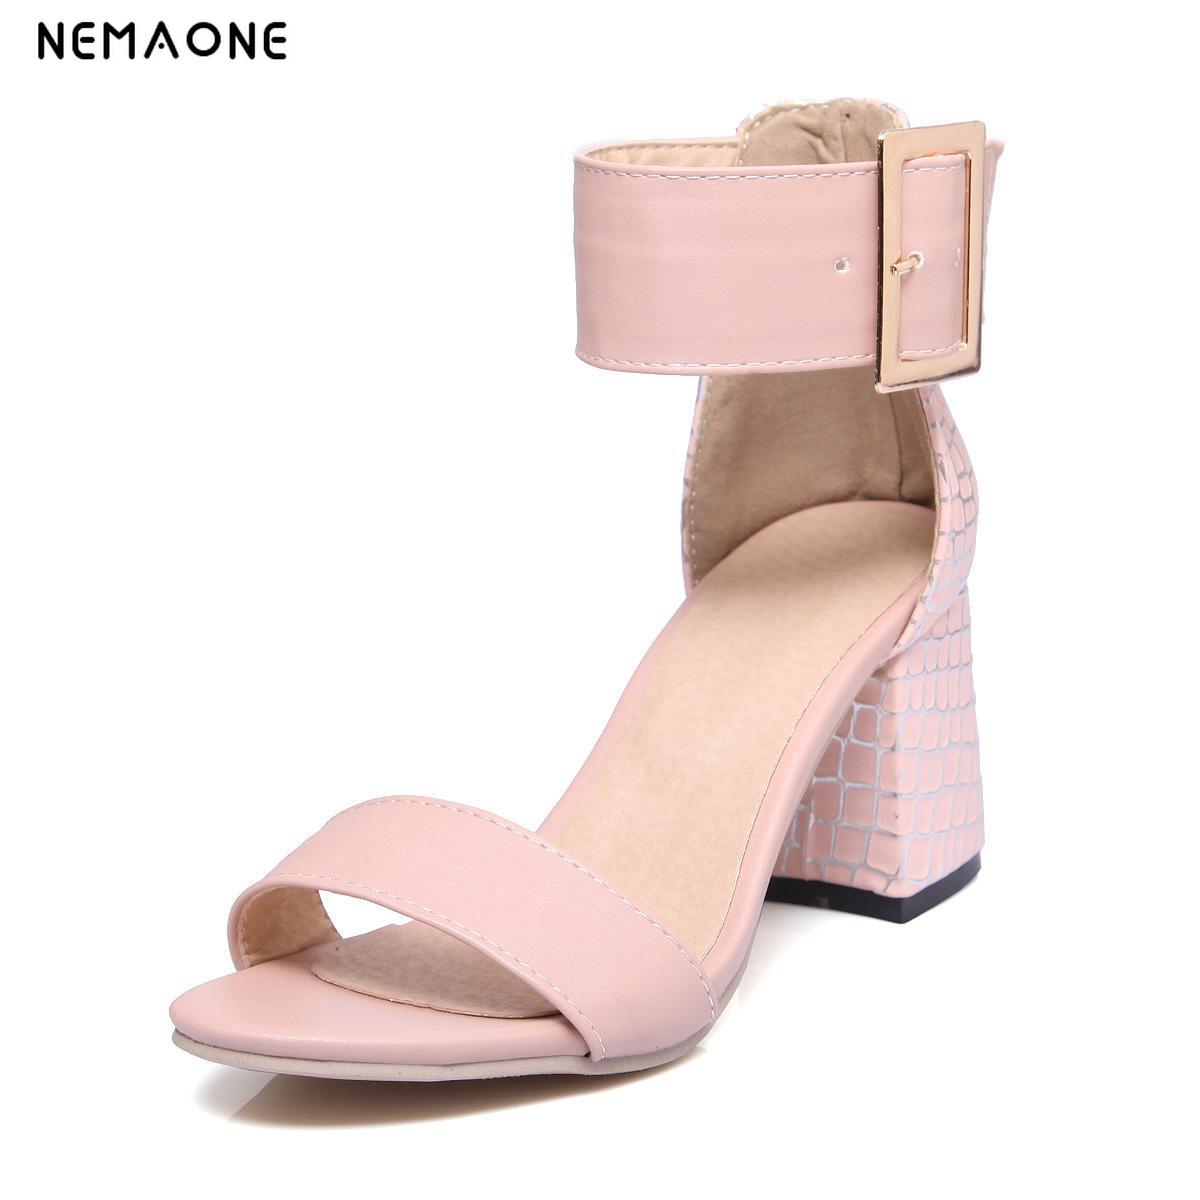 NEMAONE 2017 New elegant women shoes high heels sandals women summer shoes woman sexy ankle strap ladies shoes white pink blue new arrival black brown leather summer ankle strappy women sandals t strap high thin heels sexy party platfrom shoes woman